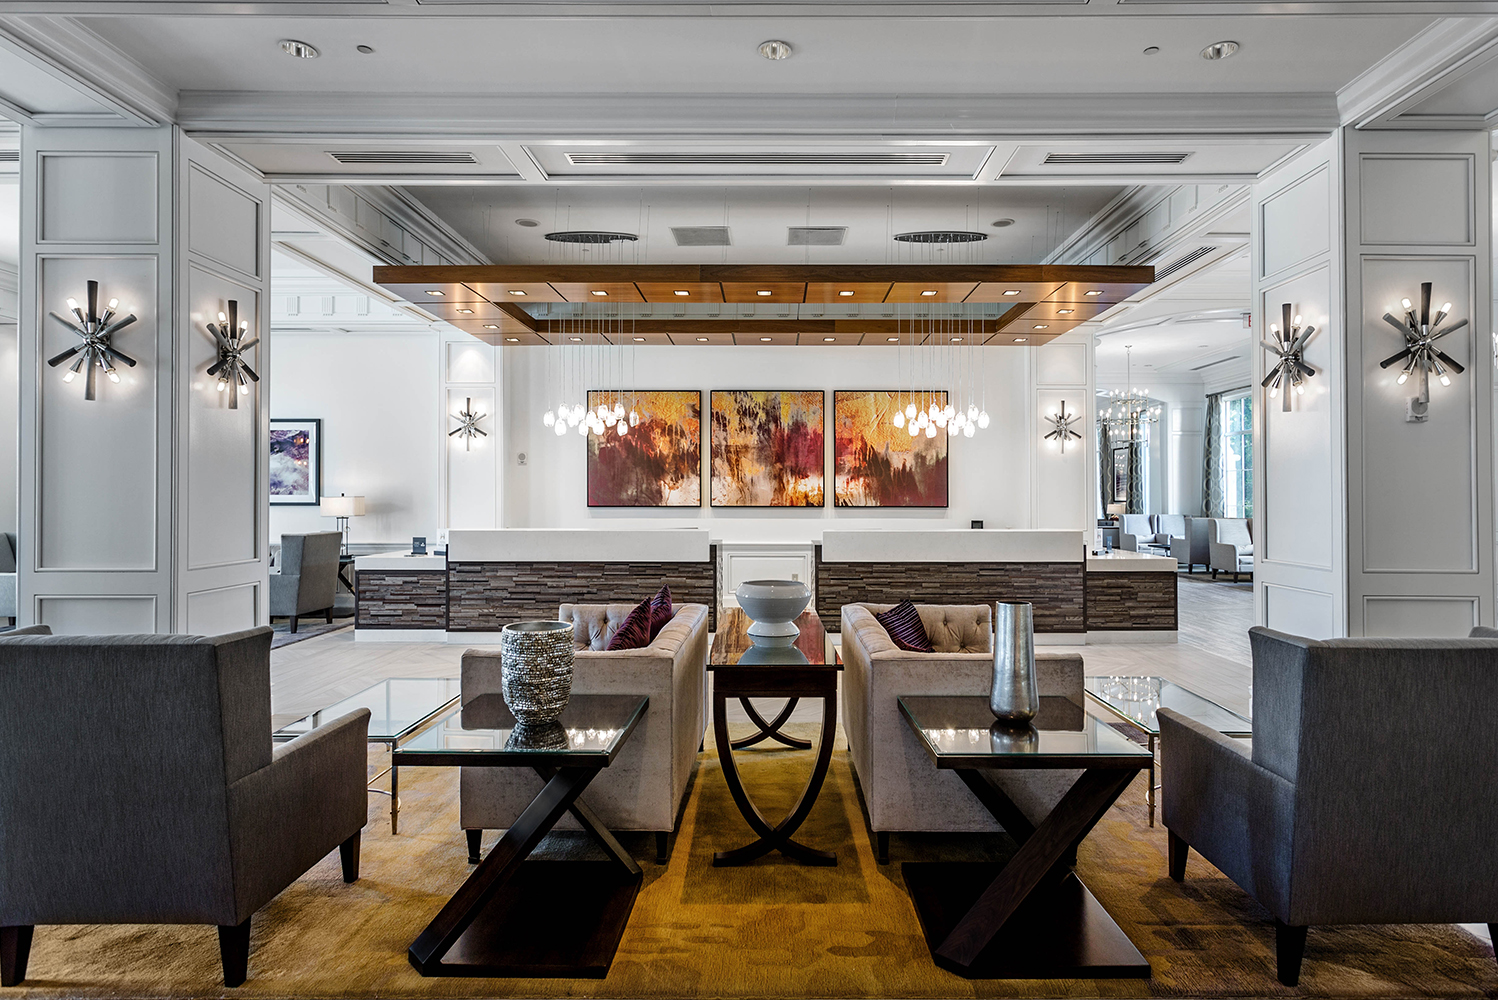 For this phase of the renovation, Olshan Properties focused on an overhaul of the hotel's public areas.